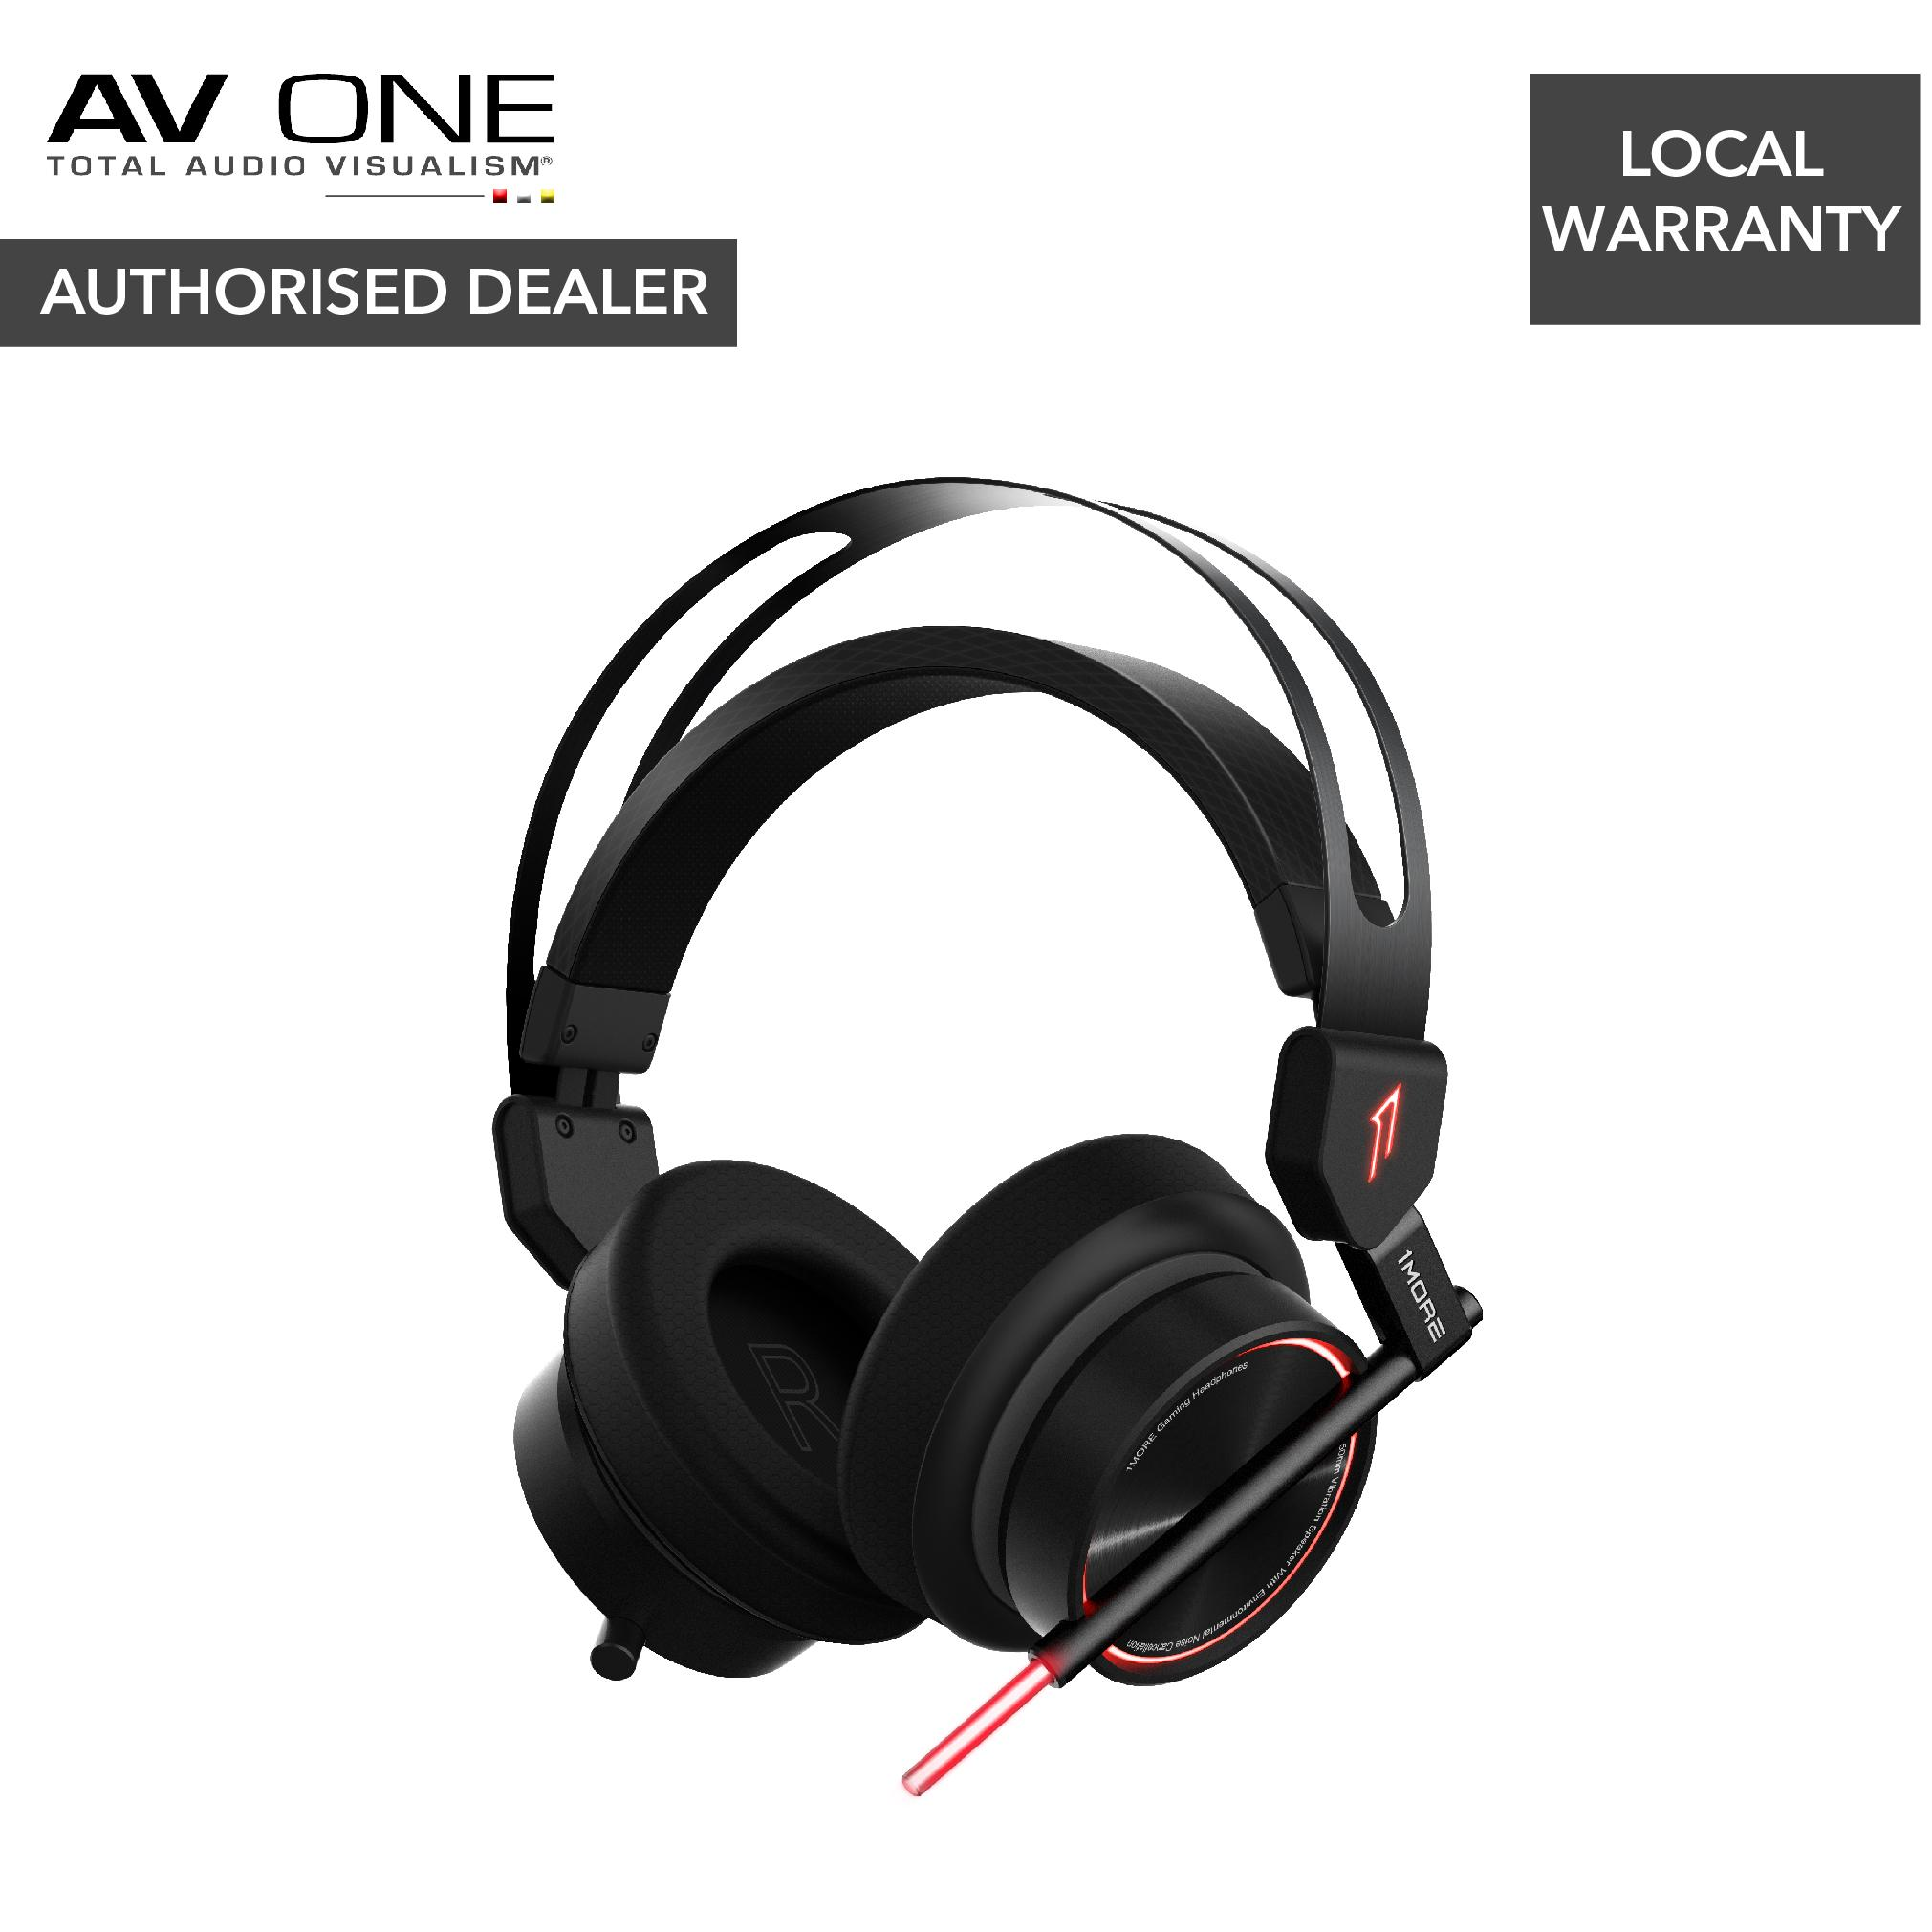 1MORE H1005 SPEARHEAD VR GAMING HEADPHONES Authorized Dealer/Official Product/Warranty